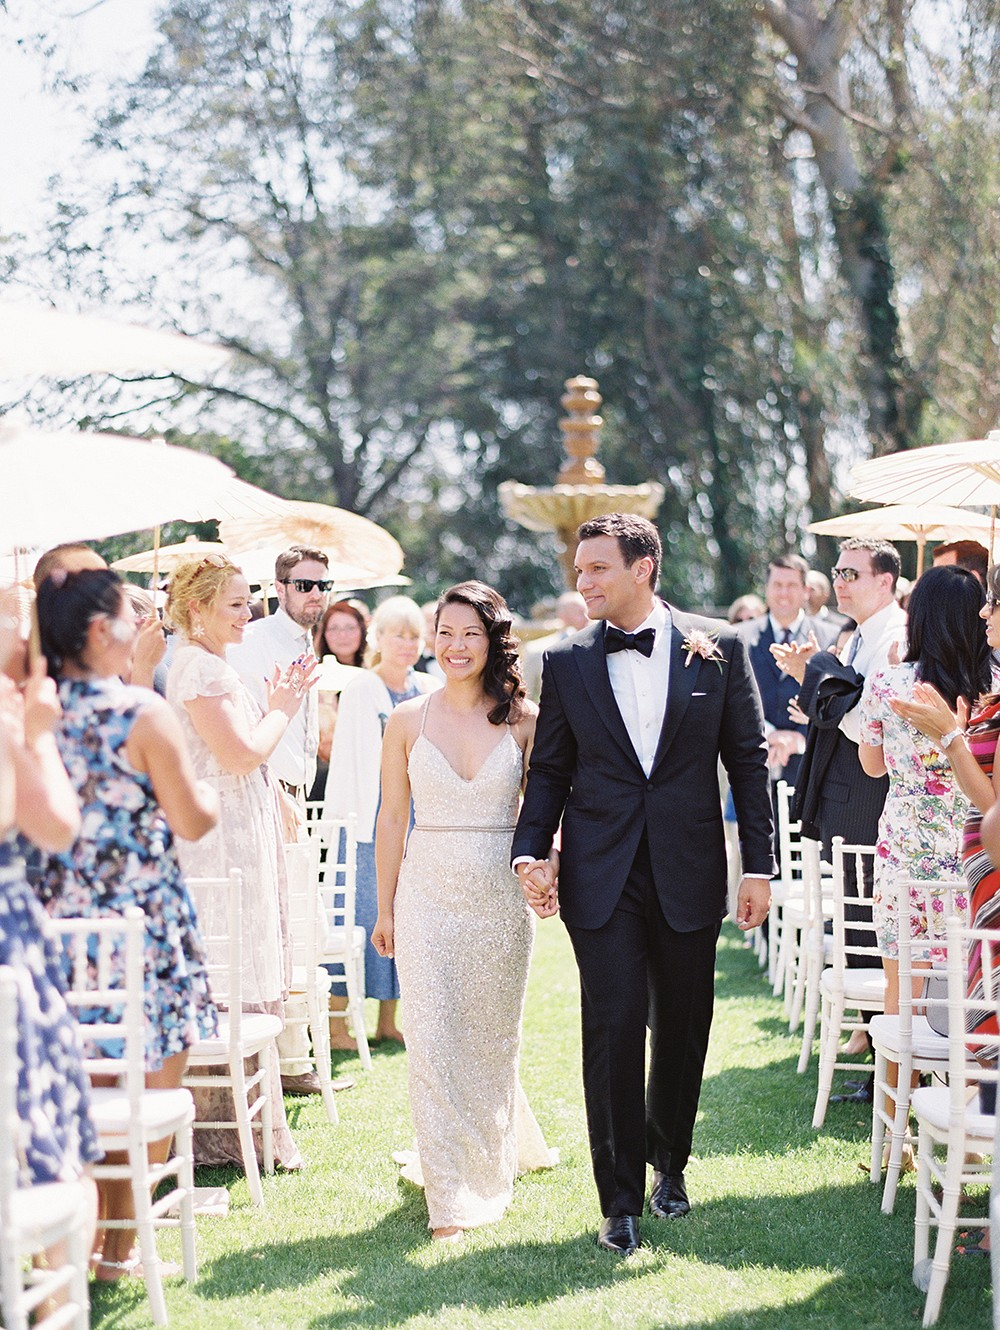 A Chic Garden Wedding in Beverly Hills